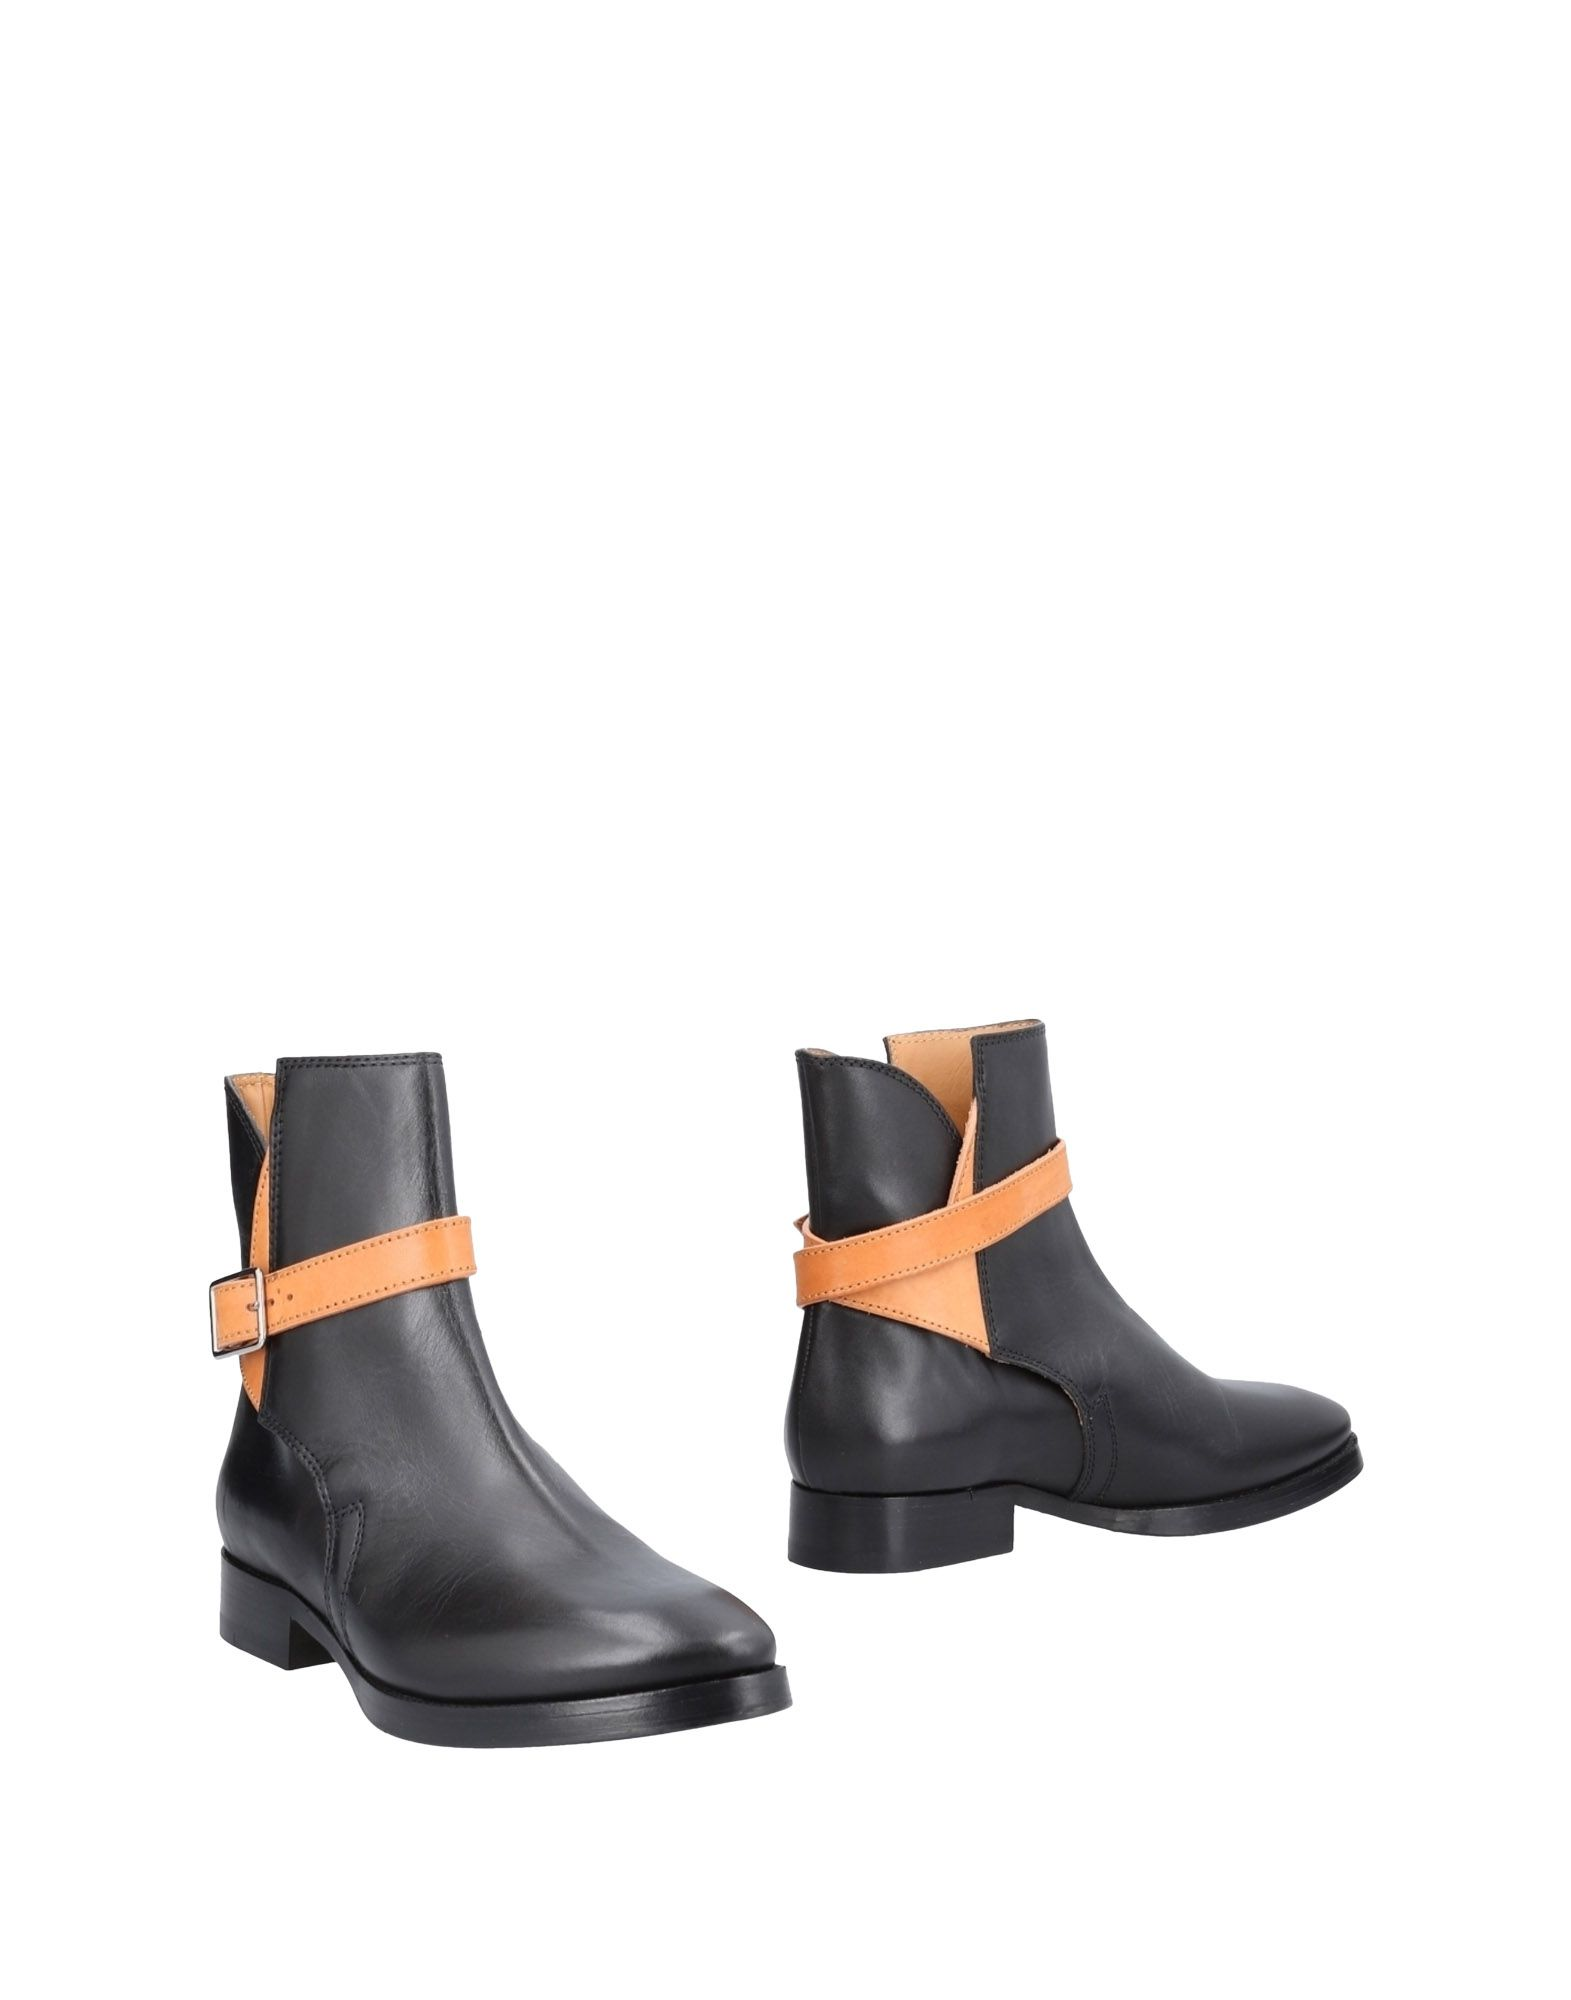 Cavallini Ankle Boot - Women Cavallini Ankle Boots online on   on Canada - 11483597FU 3264c3